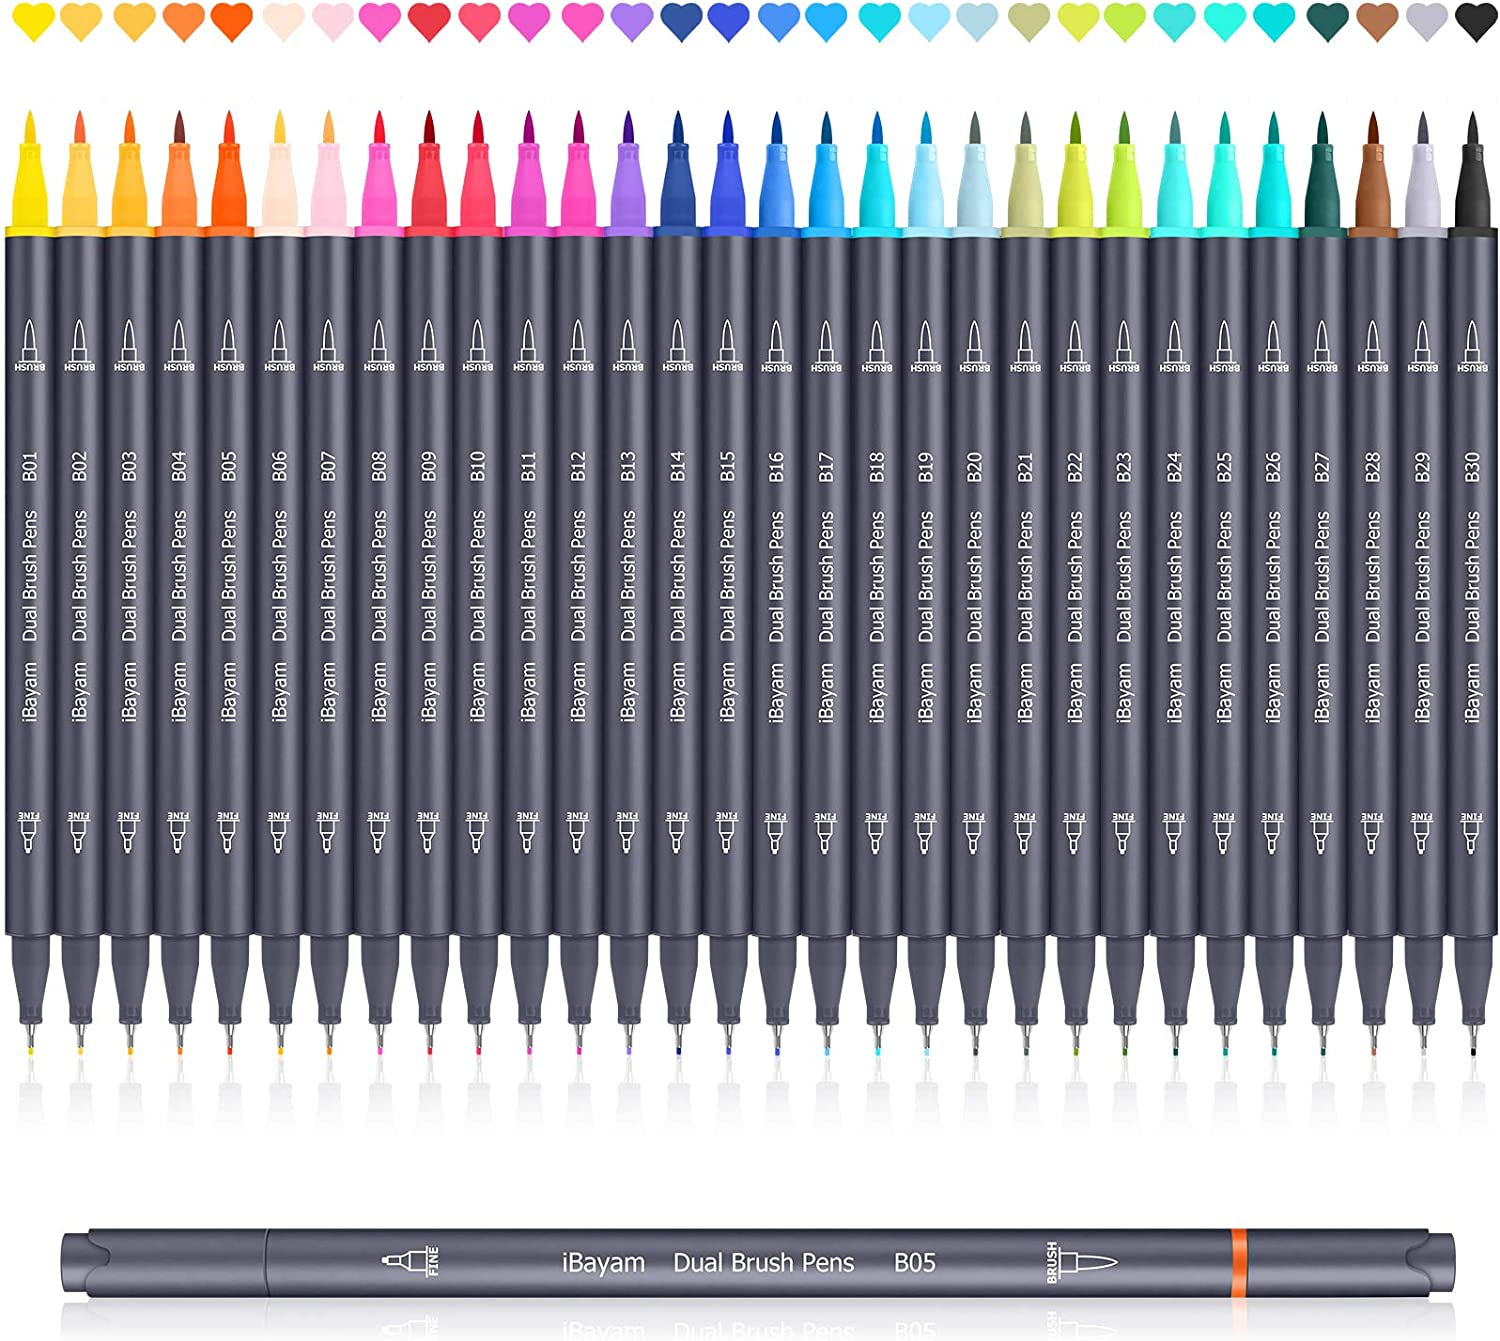 iBayam Dual Brush Pens 30 Vibrant-Color Brush Tip & Fineliner Art Marker Colored Pens for Journaling Note Taking Planner Calligraphy Drawing Office School Supplies, Coloring Markers for Adult Coloring